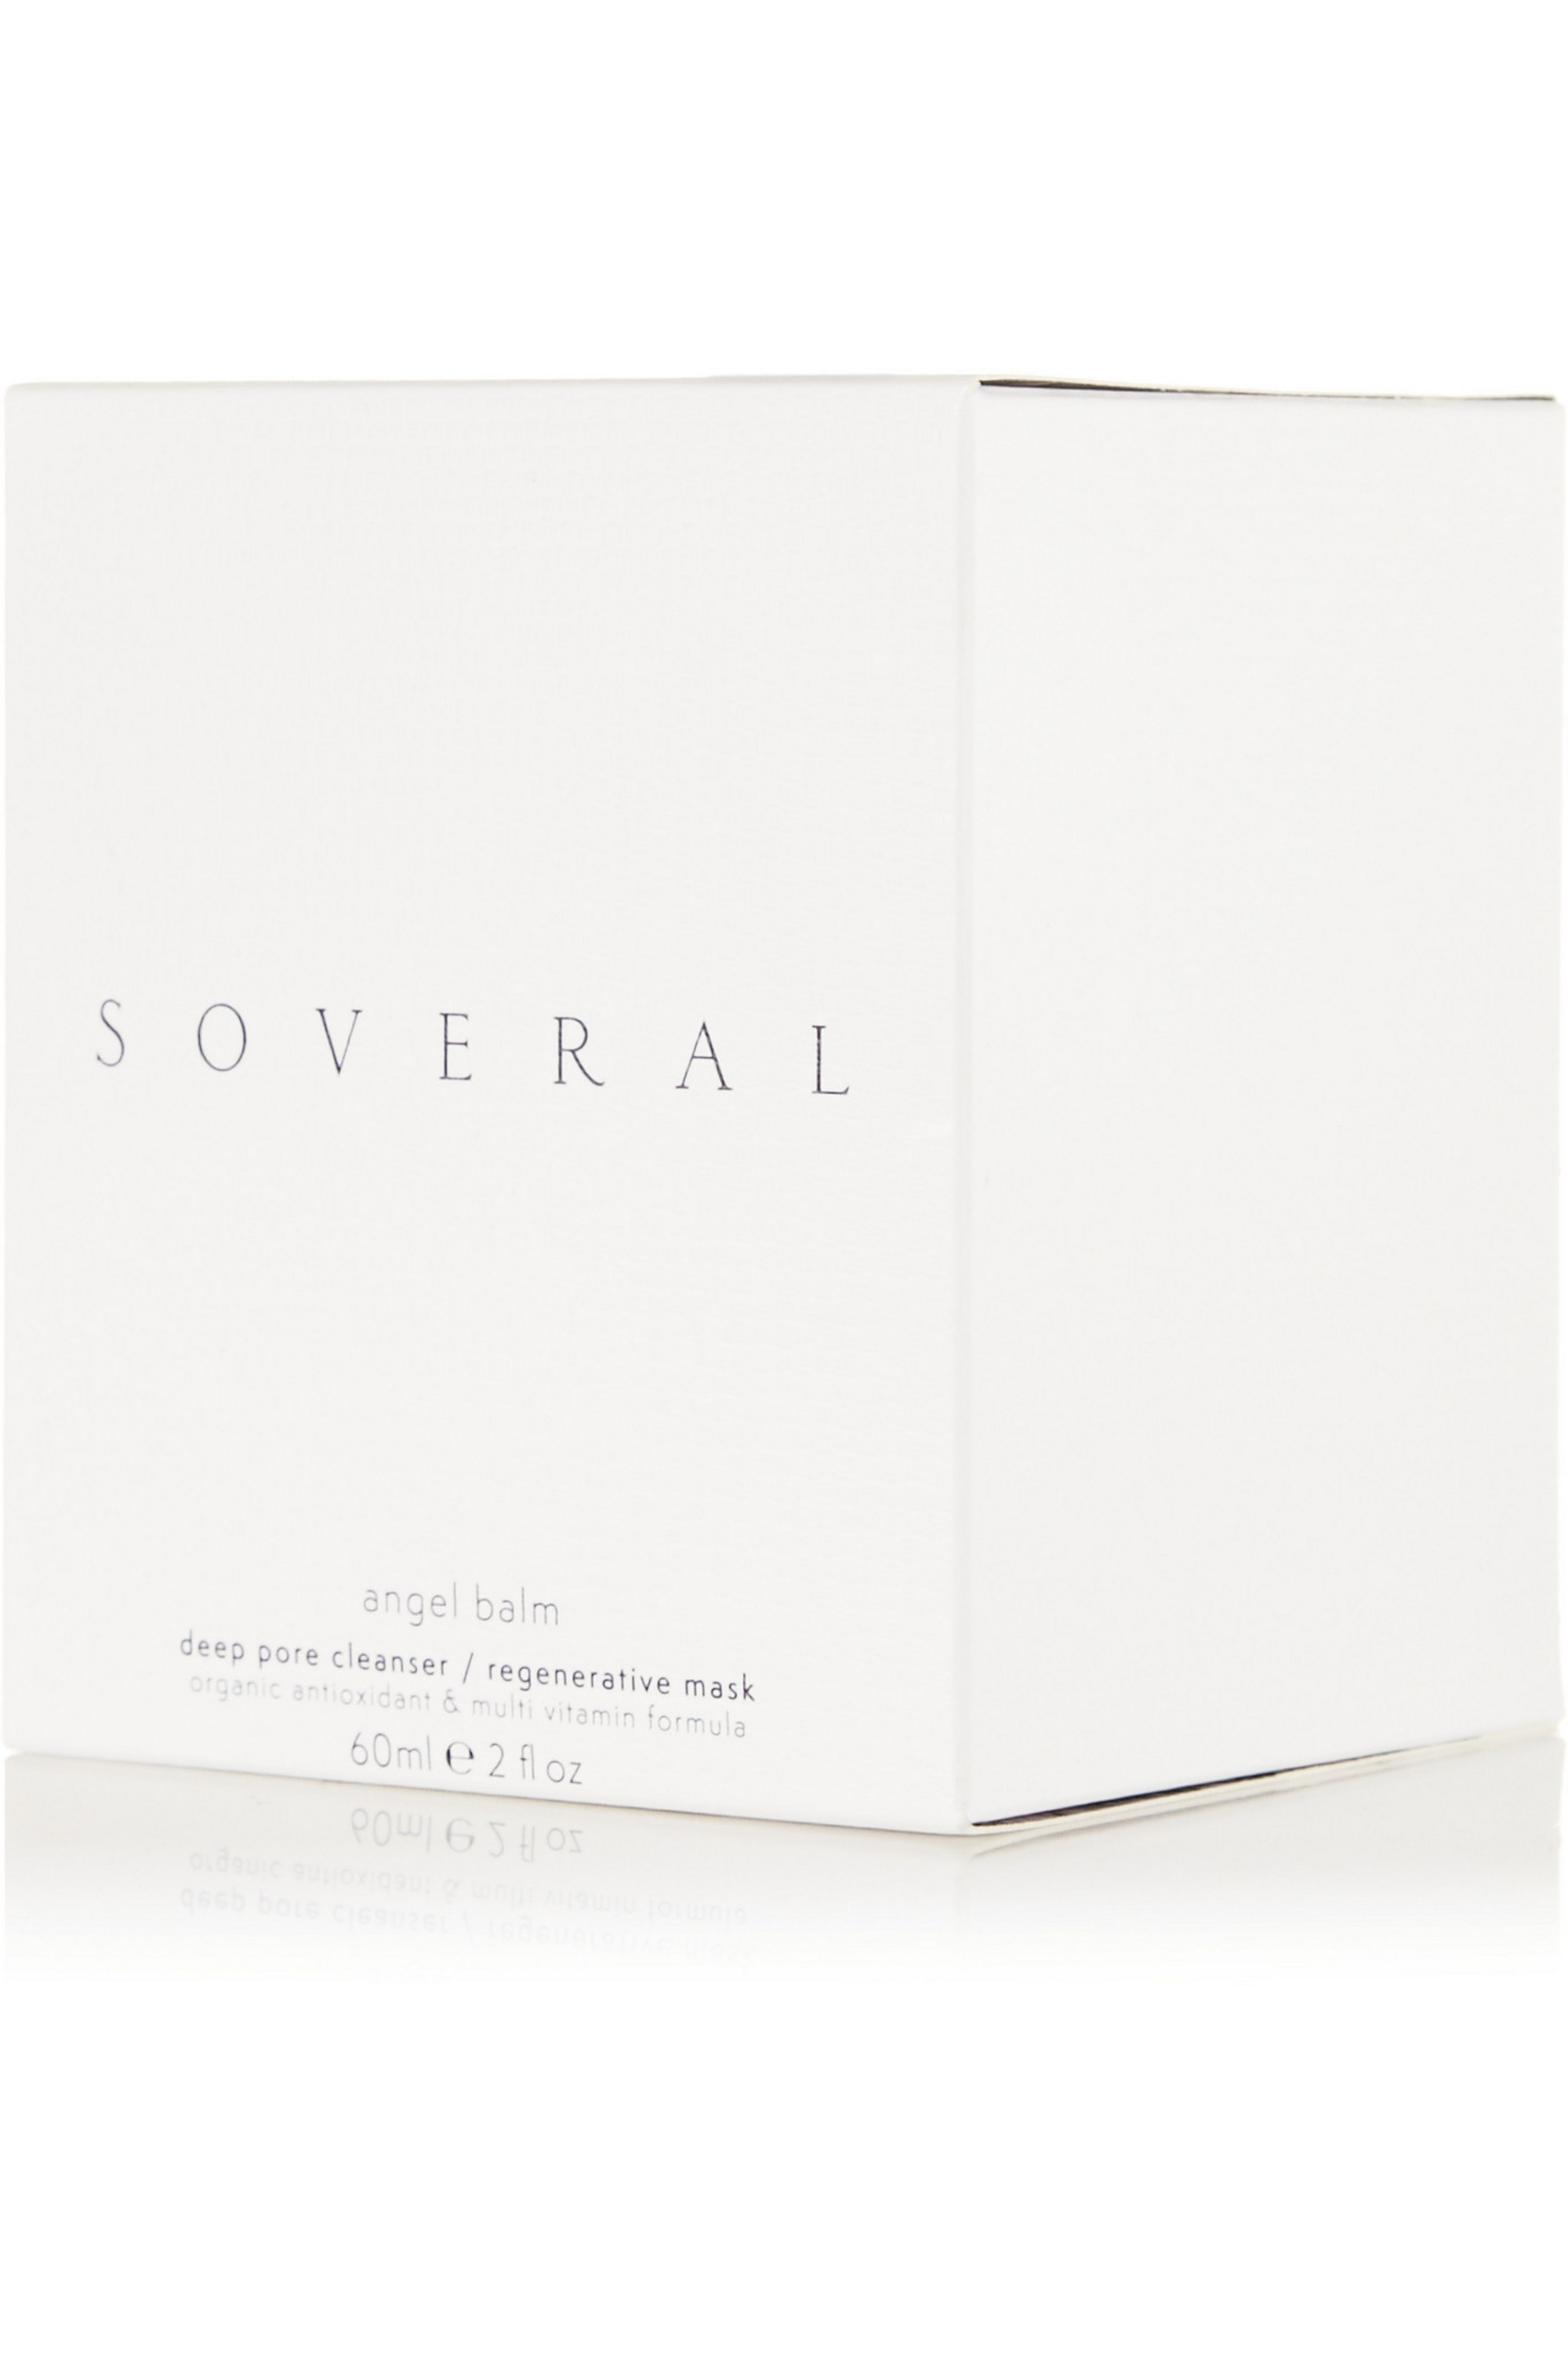 SOVERAL Angel Balm Deep Pore Cleanser and Regenerative Mask, 60ml